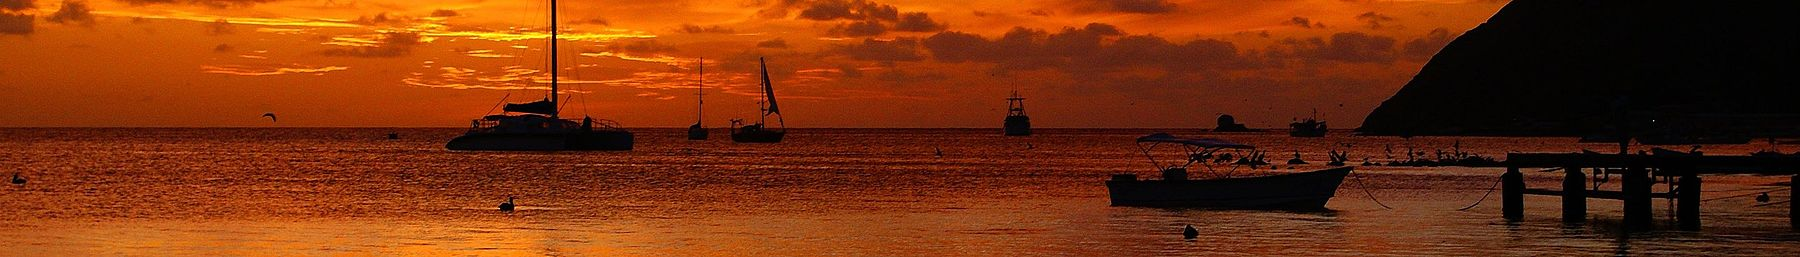 WV banner Los Roques Boats in sunset.jpg